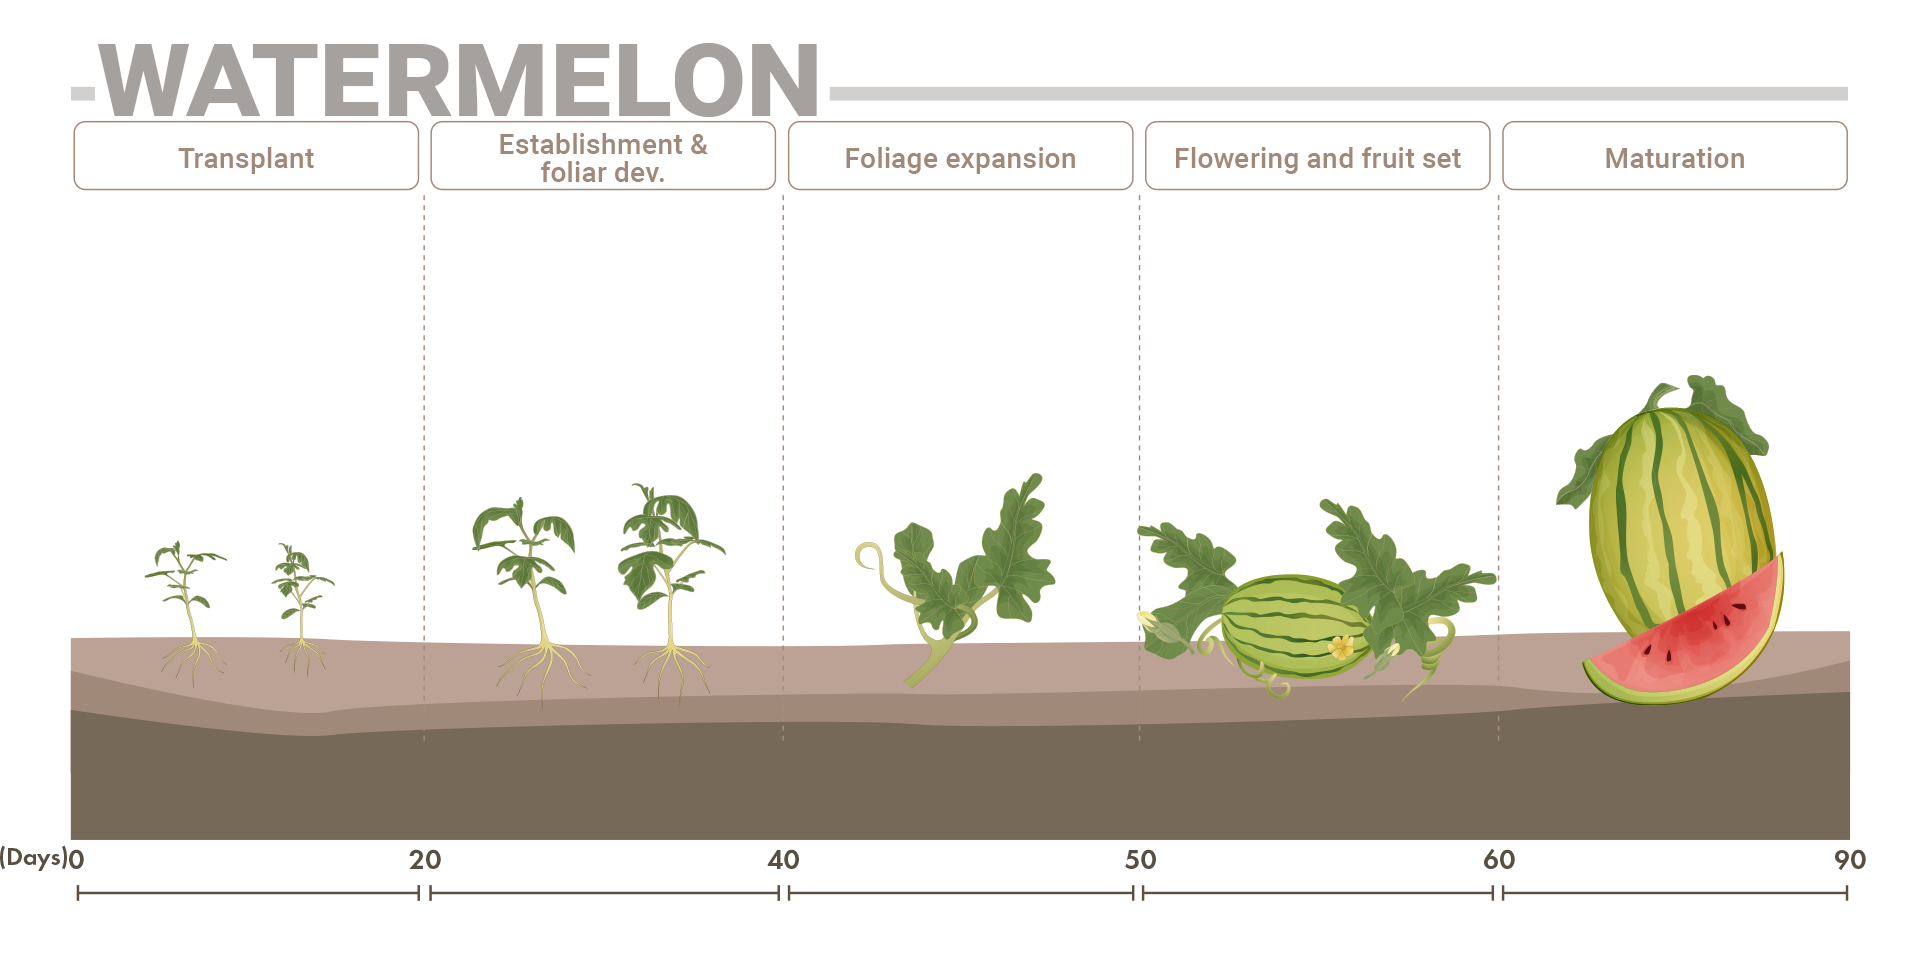 Watermelon phenological phases